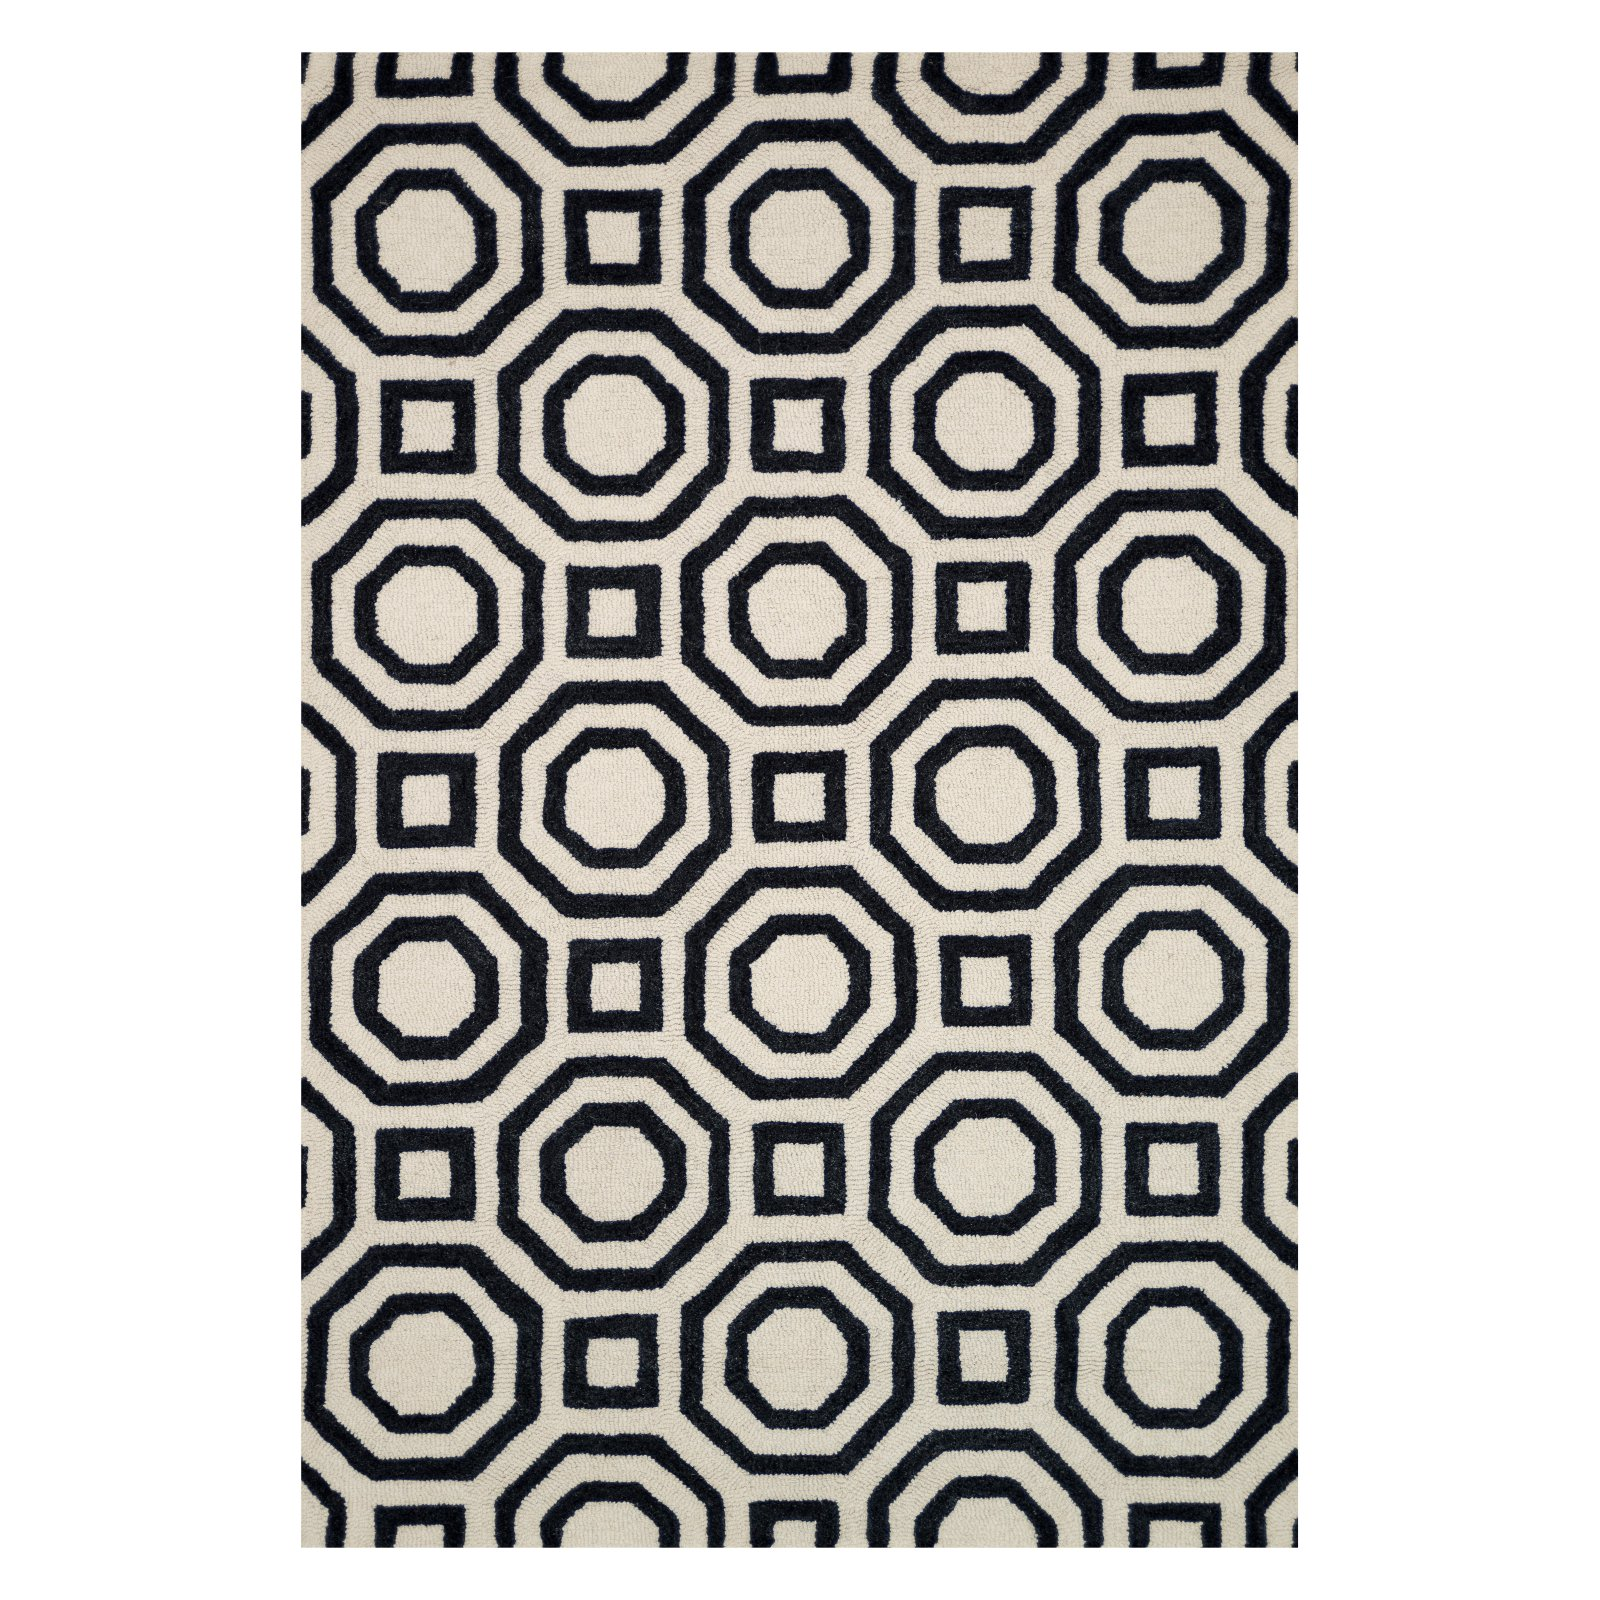 Loloi Weston Area Rug - Ivory / Black